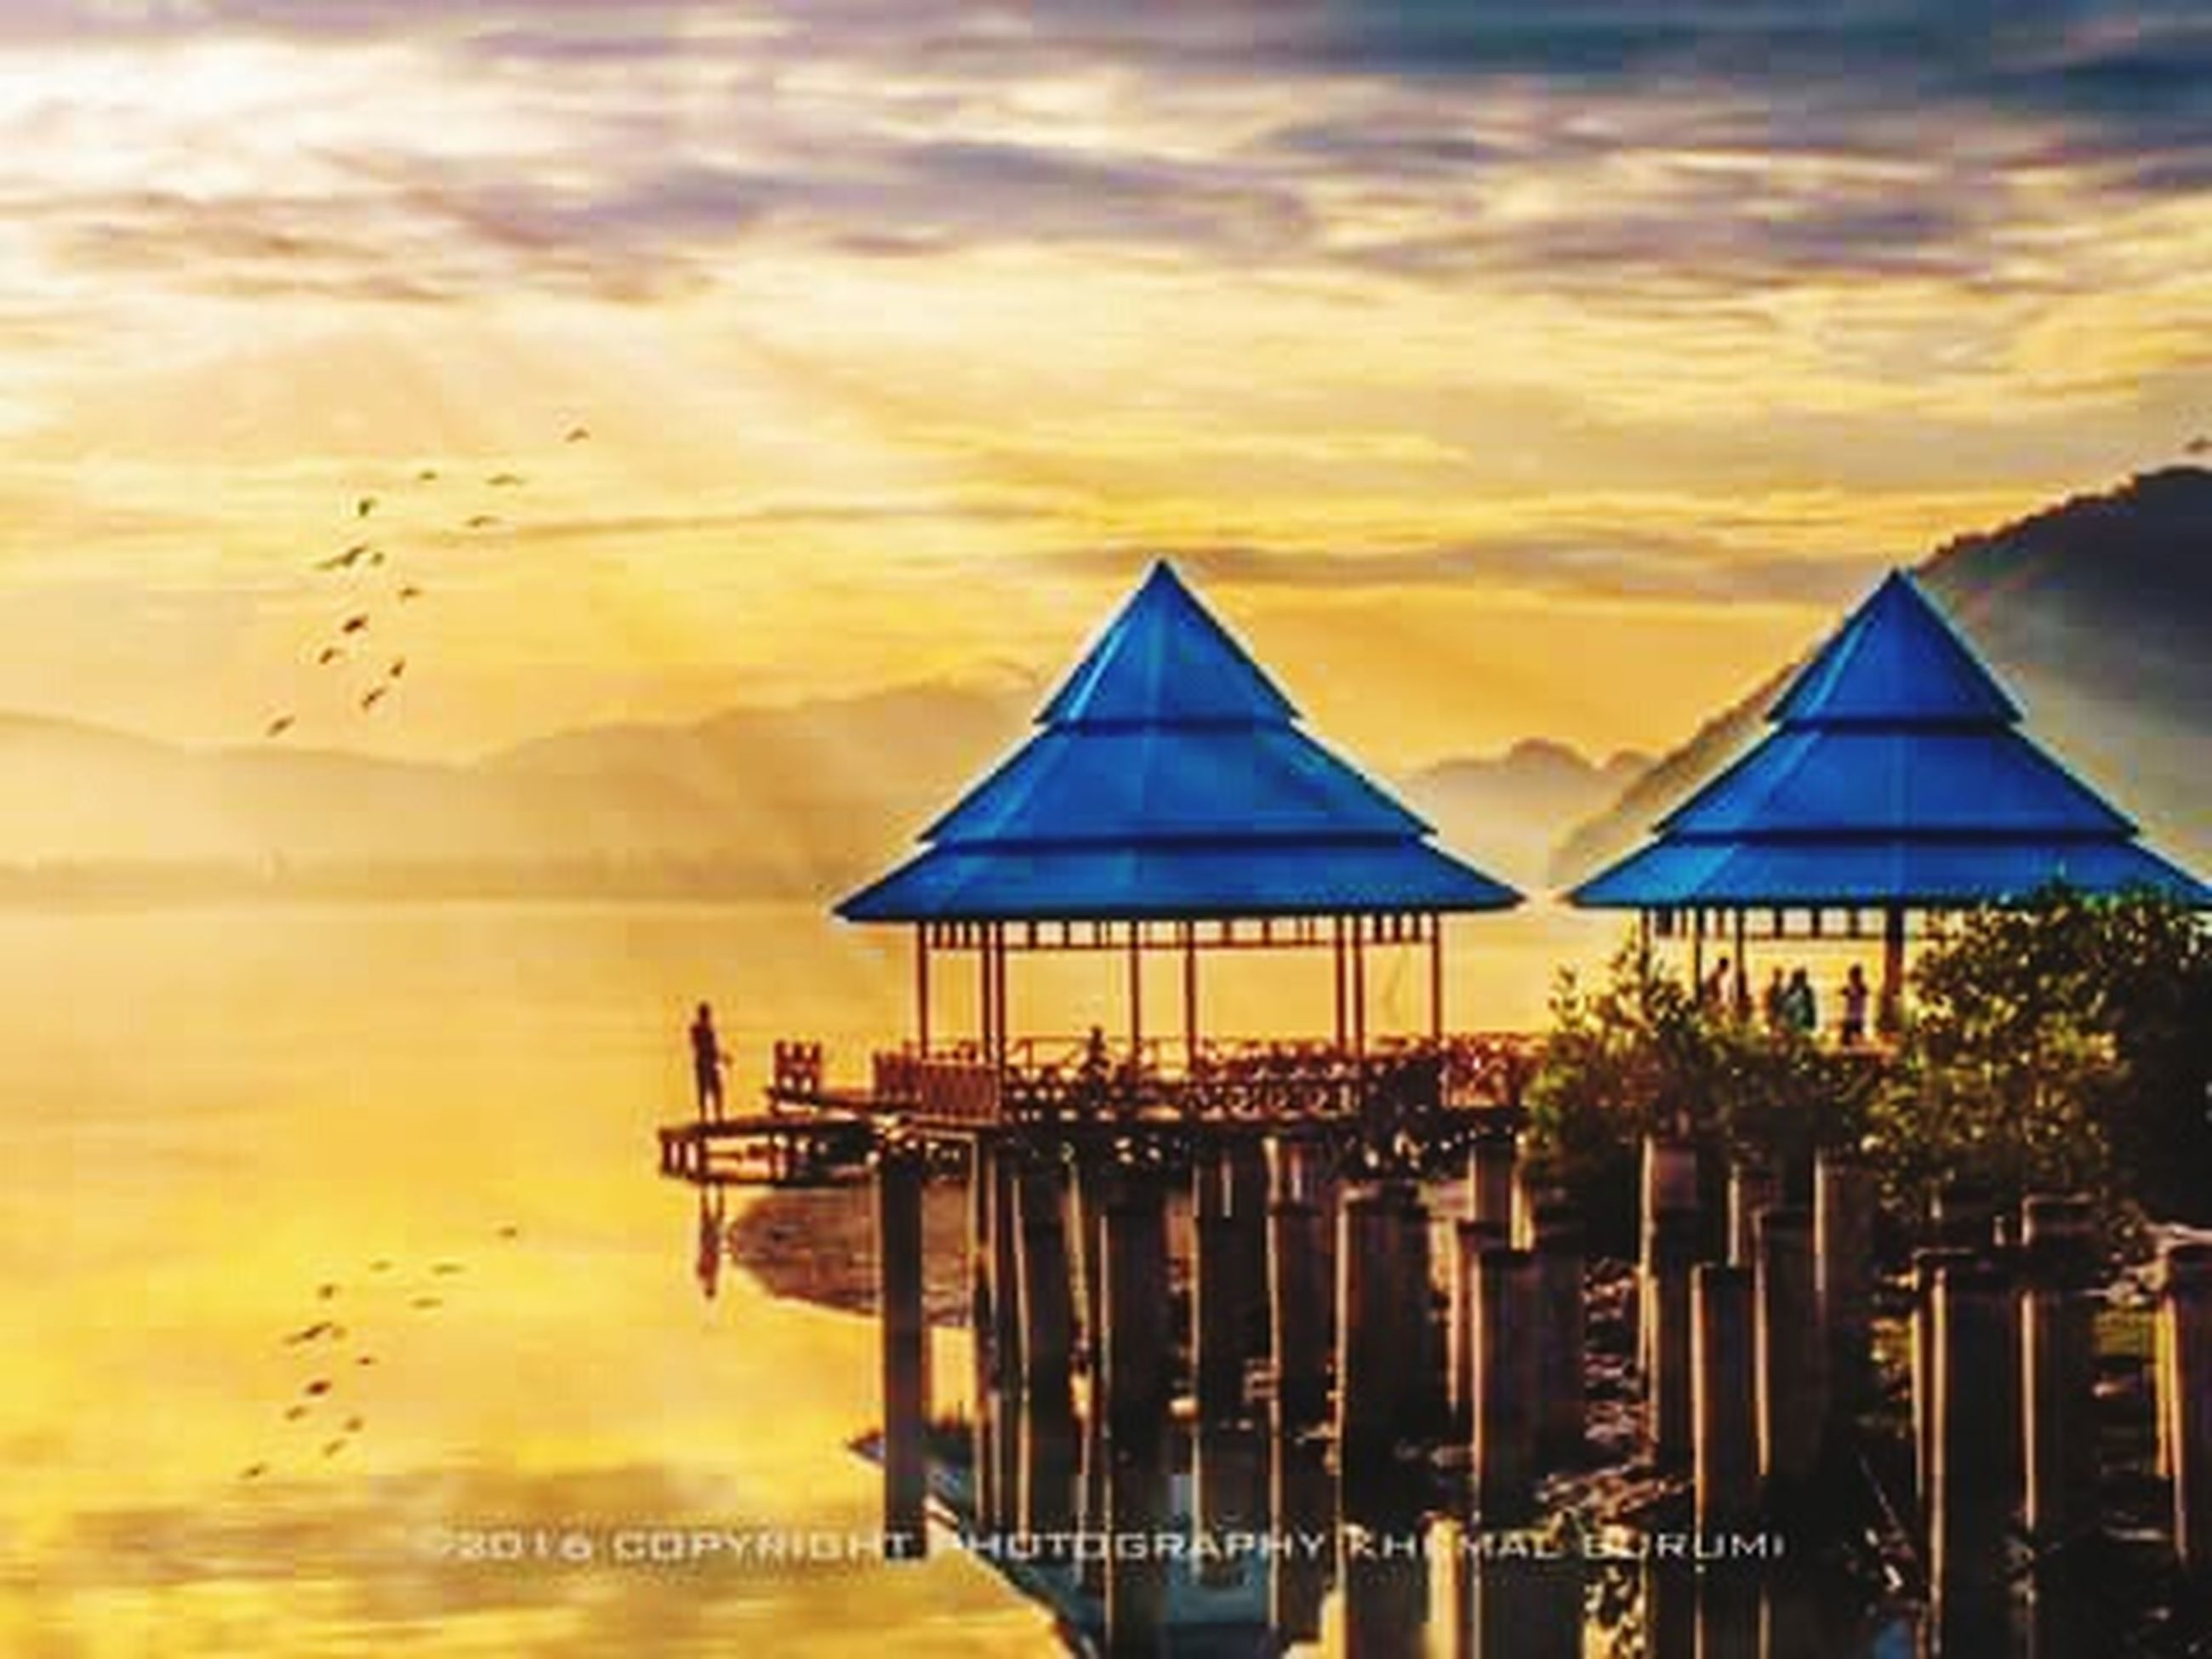 water, cloud - sky, architecture, sky, sunset, nature, sea, no people, building exterior, built structure, travel destinations, land, tranquility, beauty in nature, reflection, pier, outdoors, building, beach, luxury